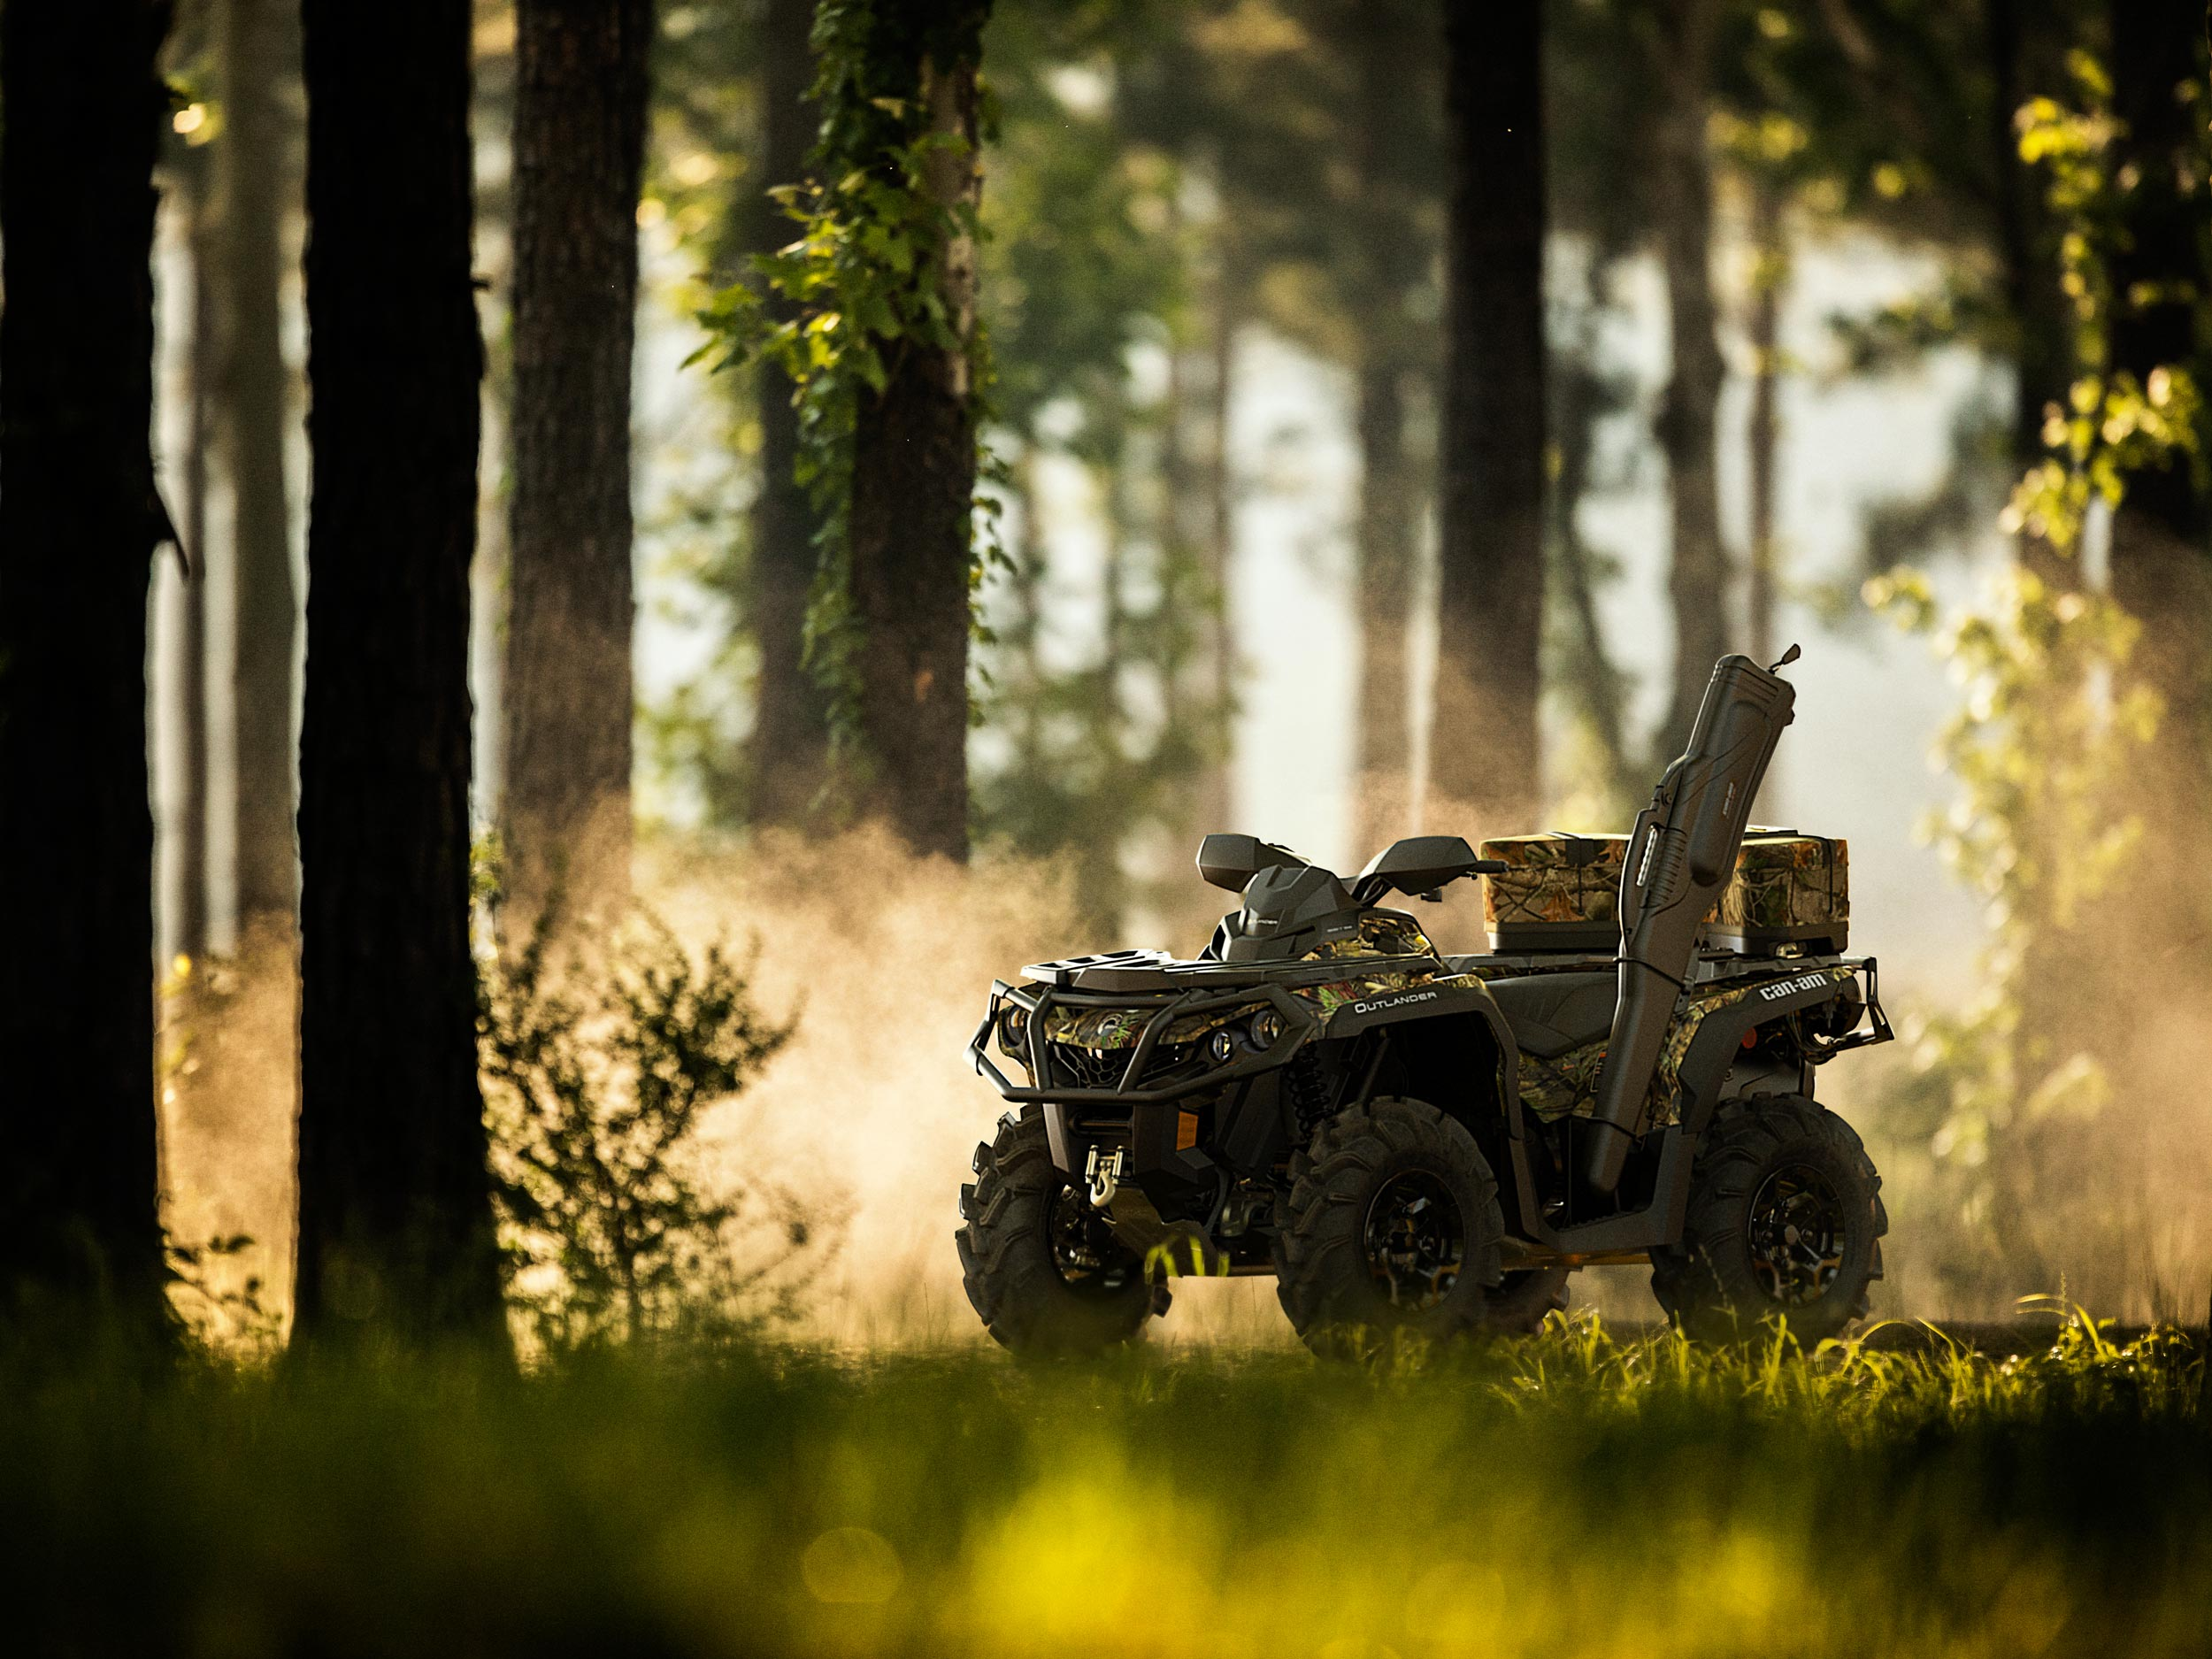 A parked Can-Am Outlander Mossy Oak Edition ATV in the forest